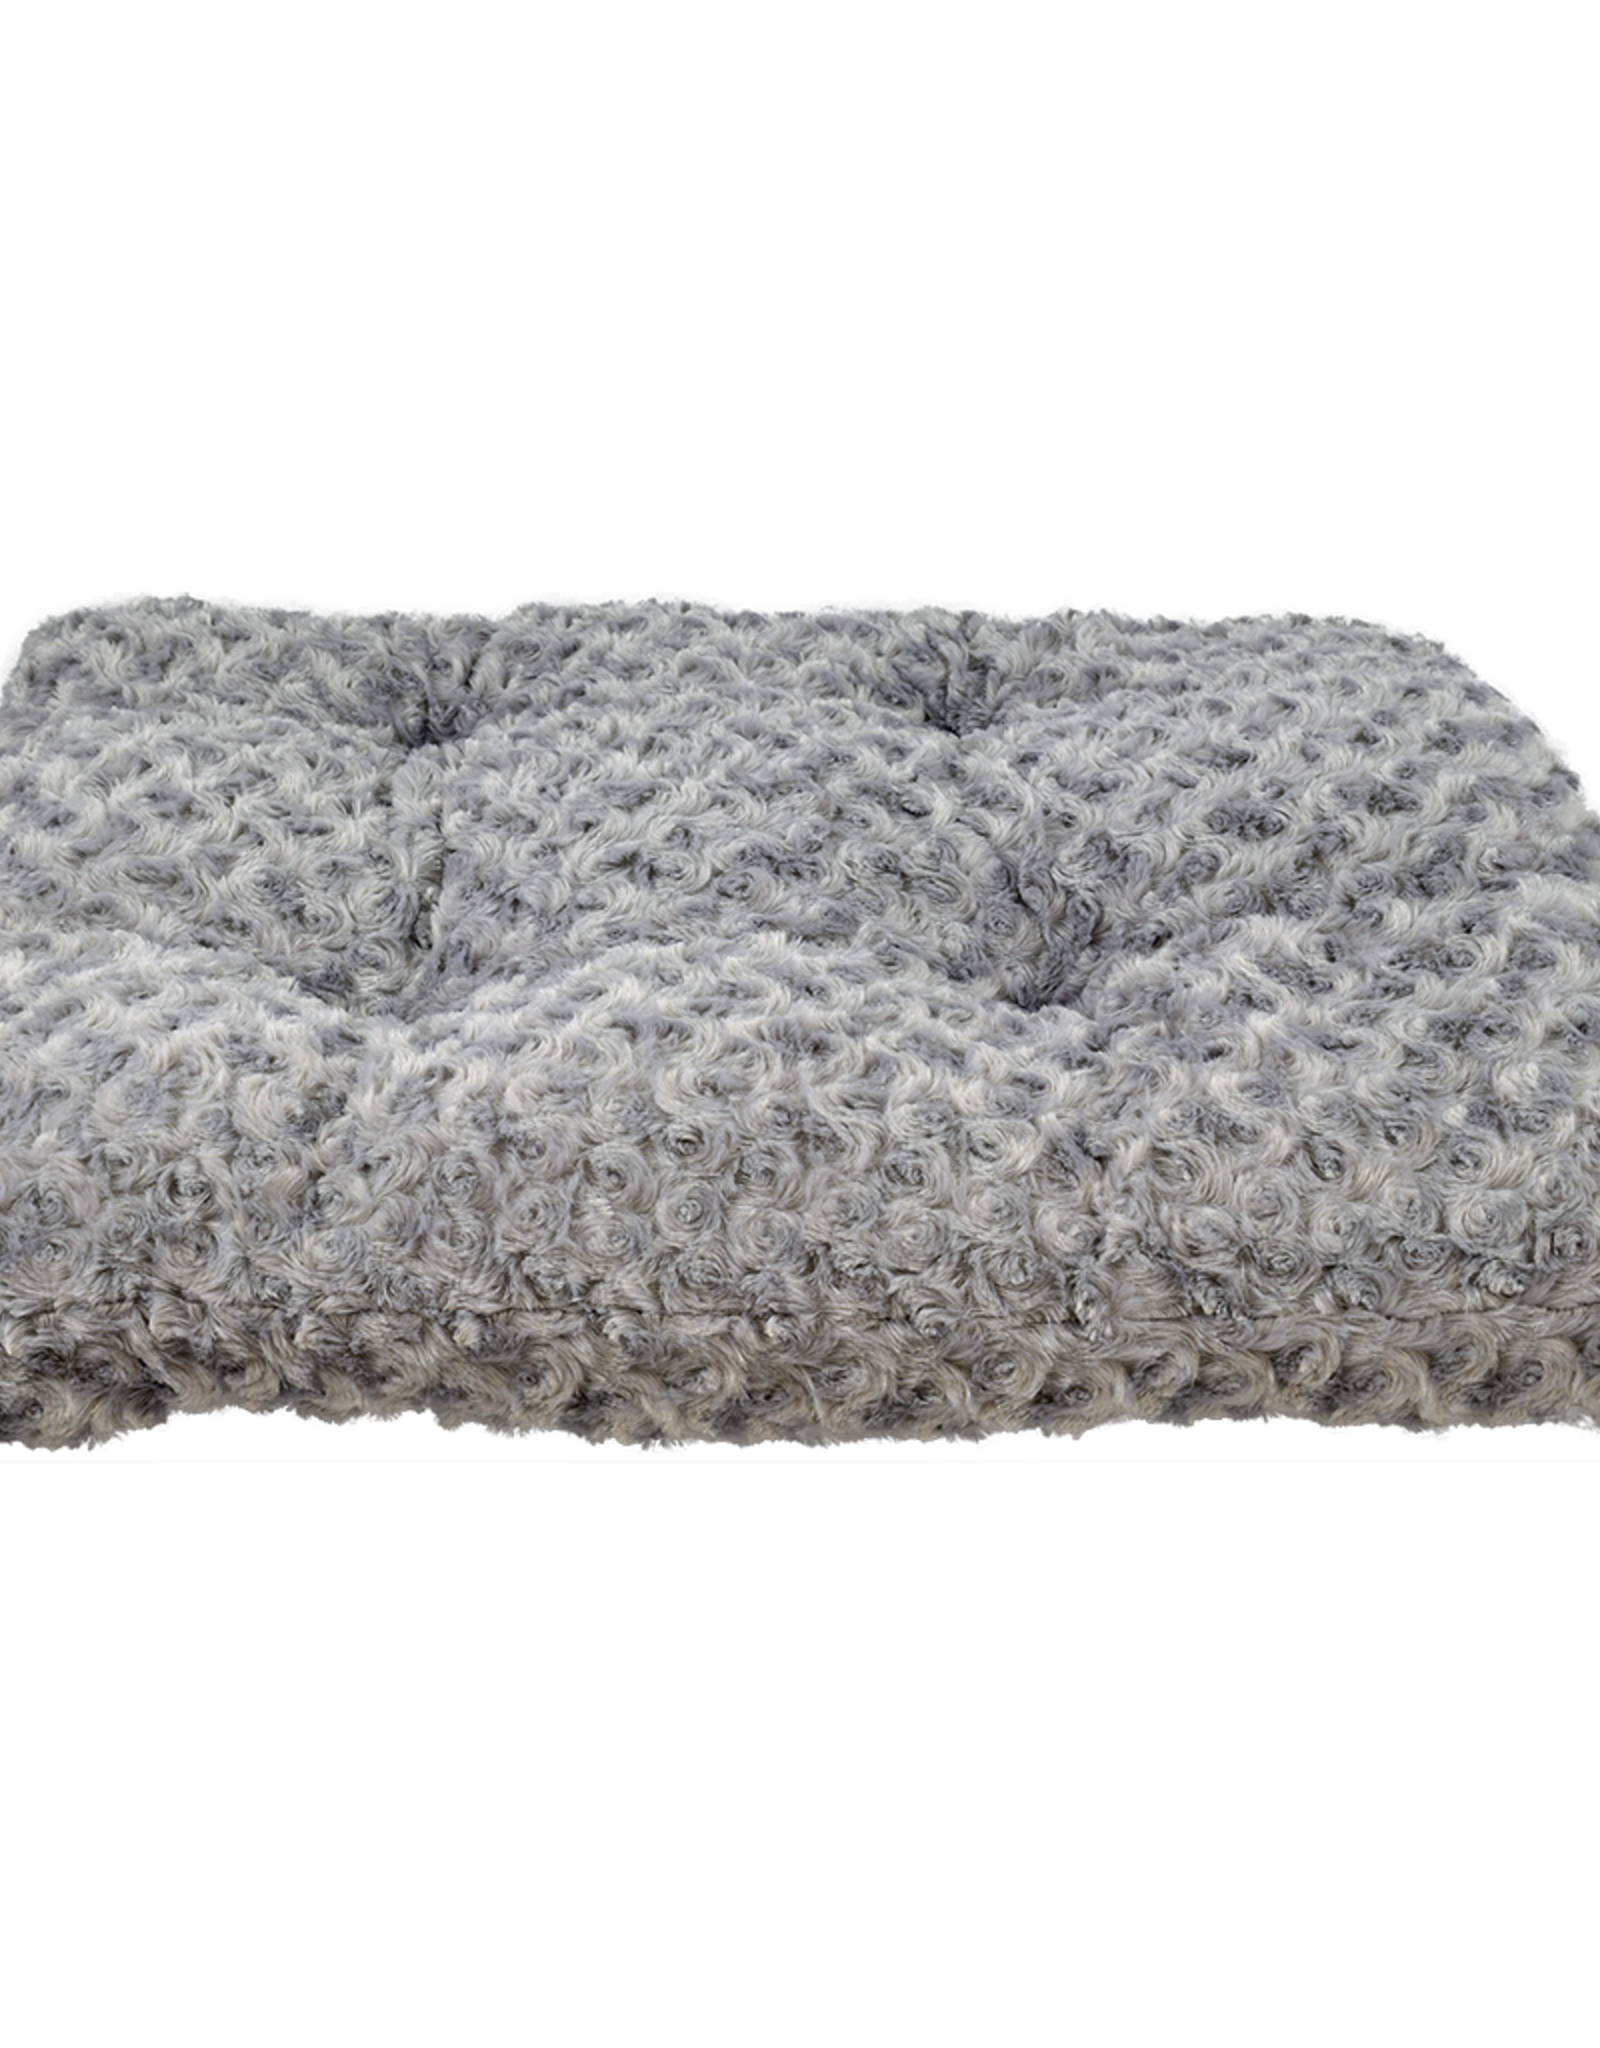 """Chill Gusset Bed Silver Swirl 19x12"""""""